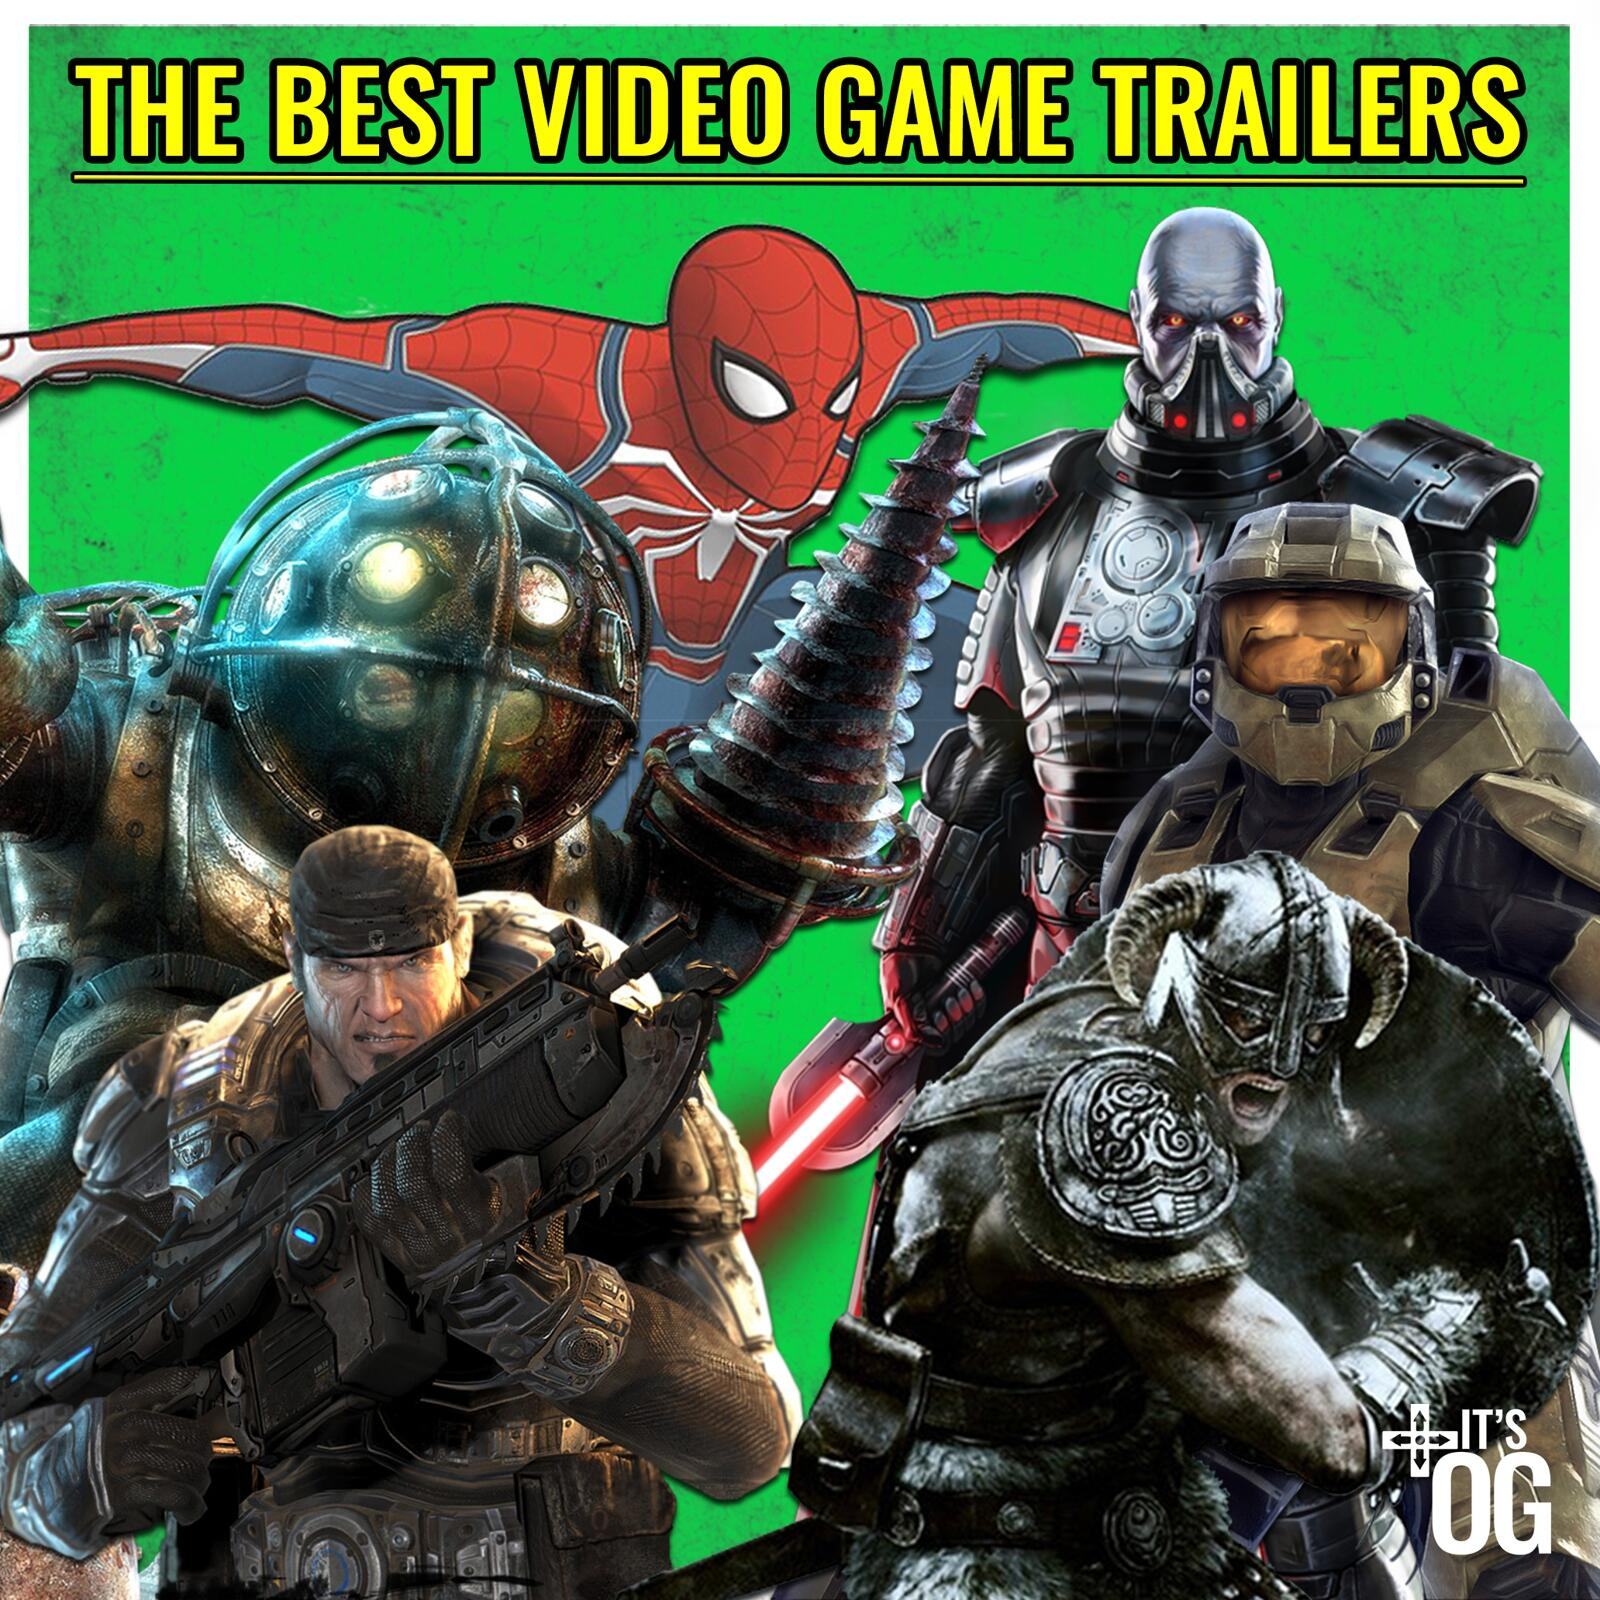 Audioboom / The Best Video Game Trailers - It's Obvious Podcast Ep  88